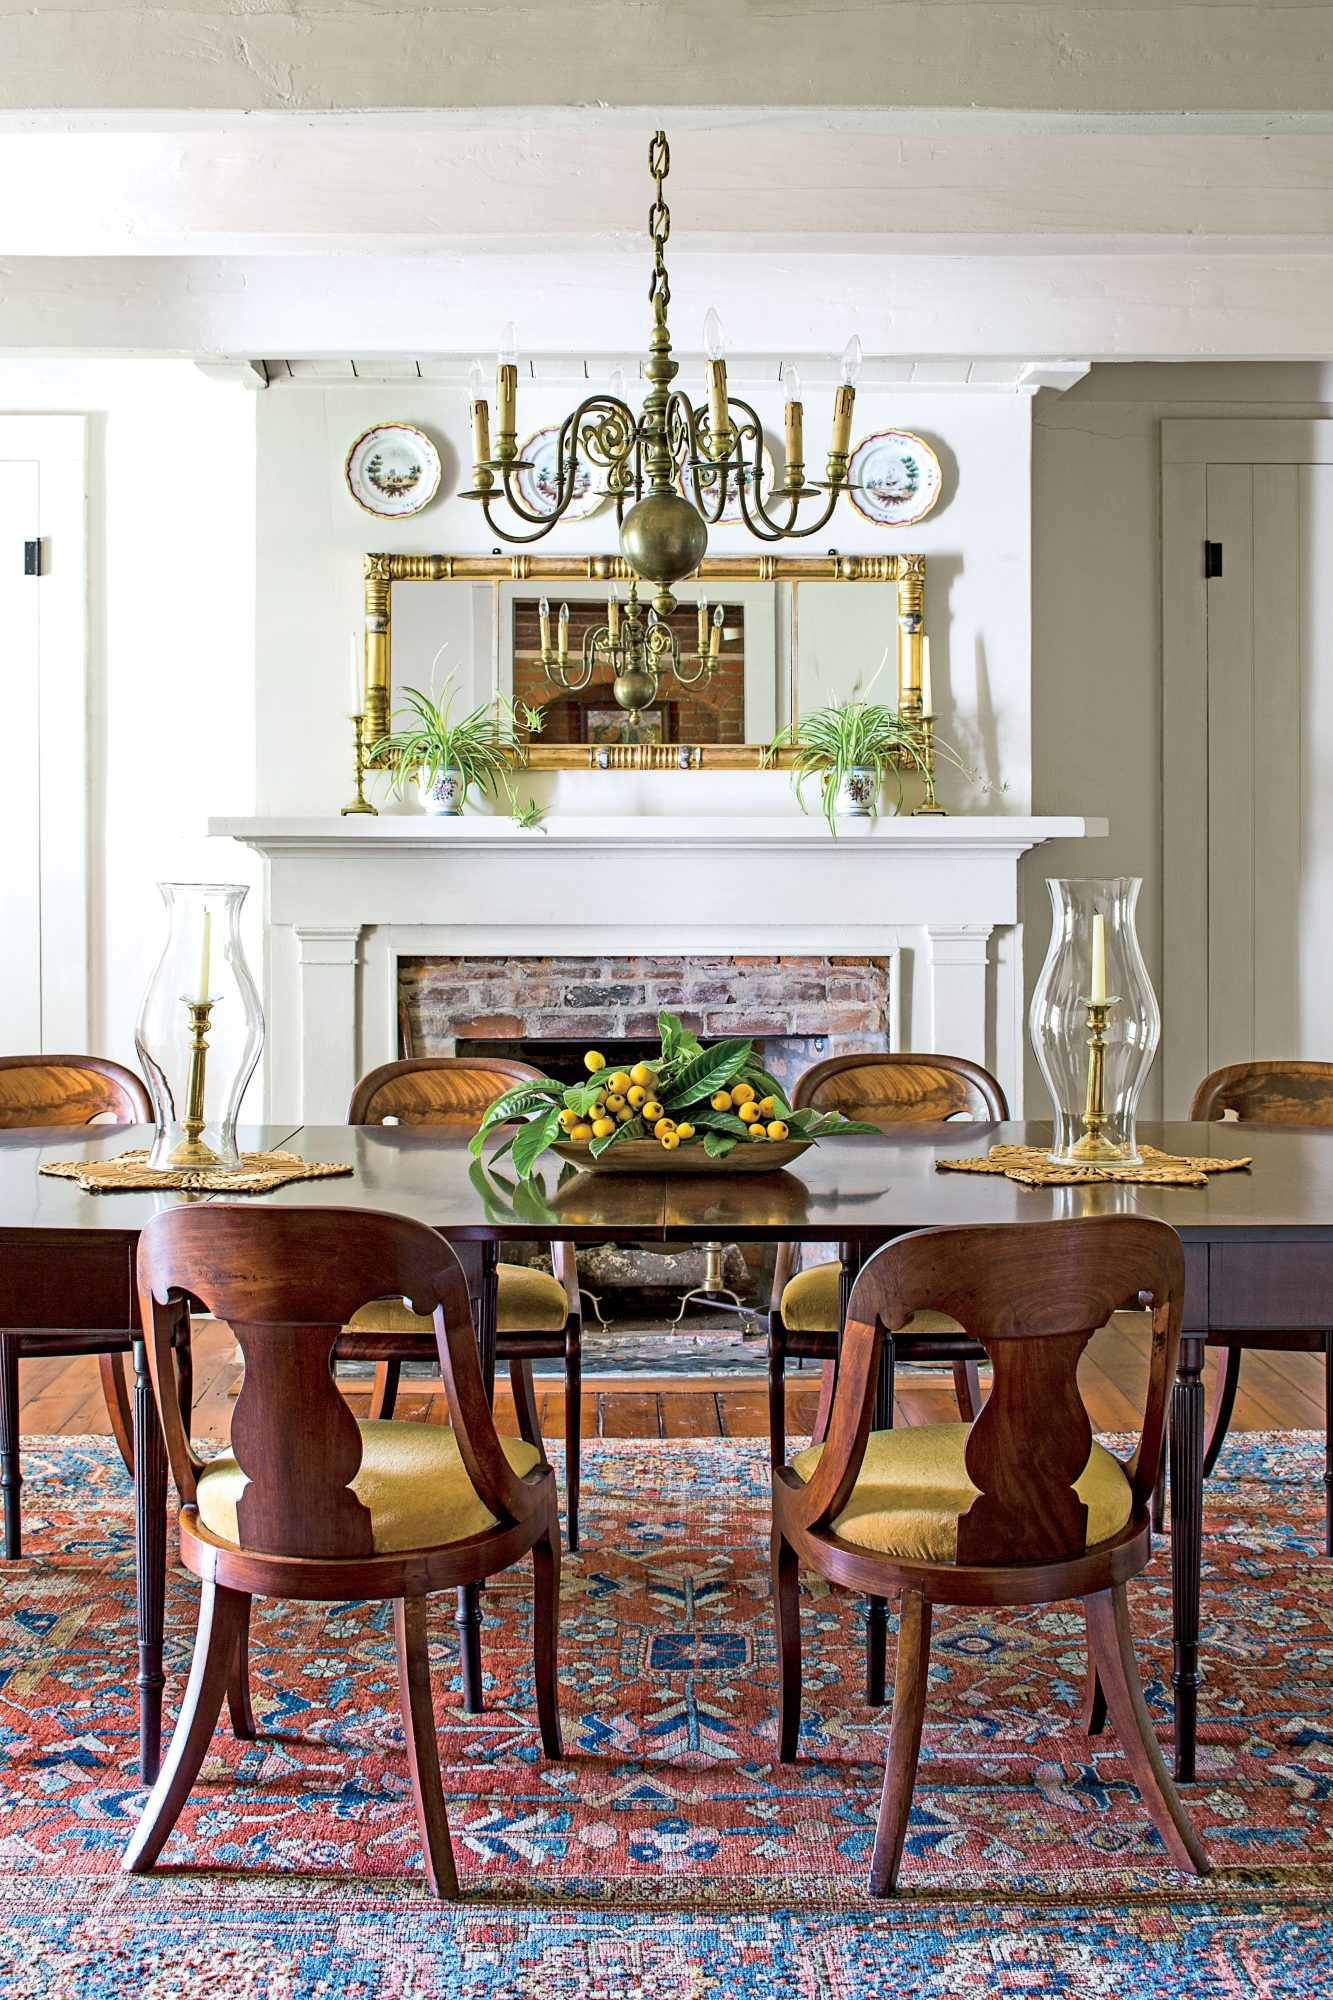 The LeJeune House Dining Room